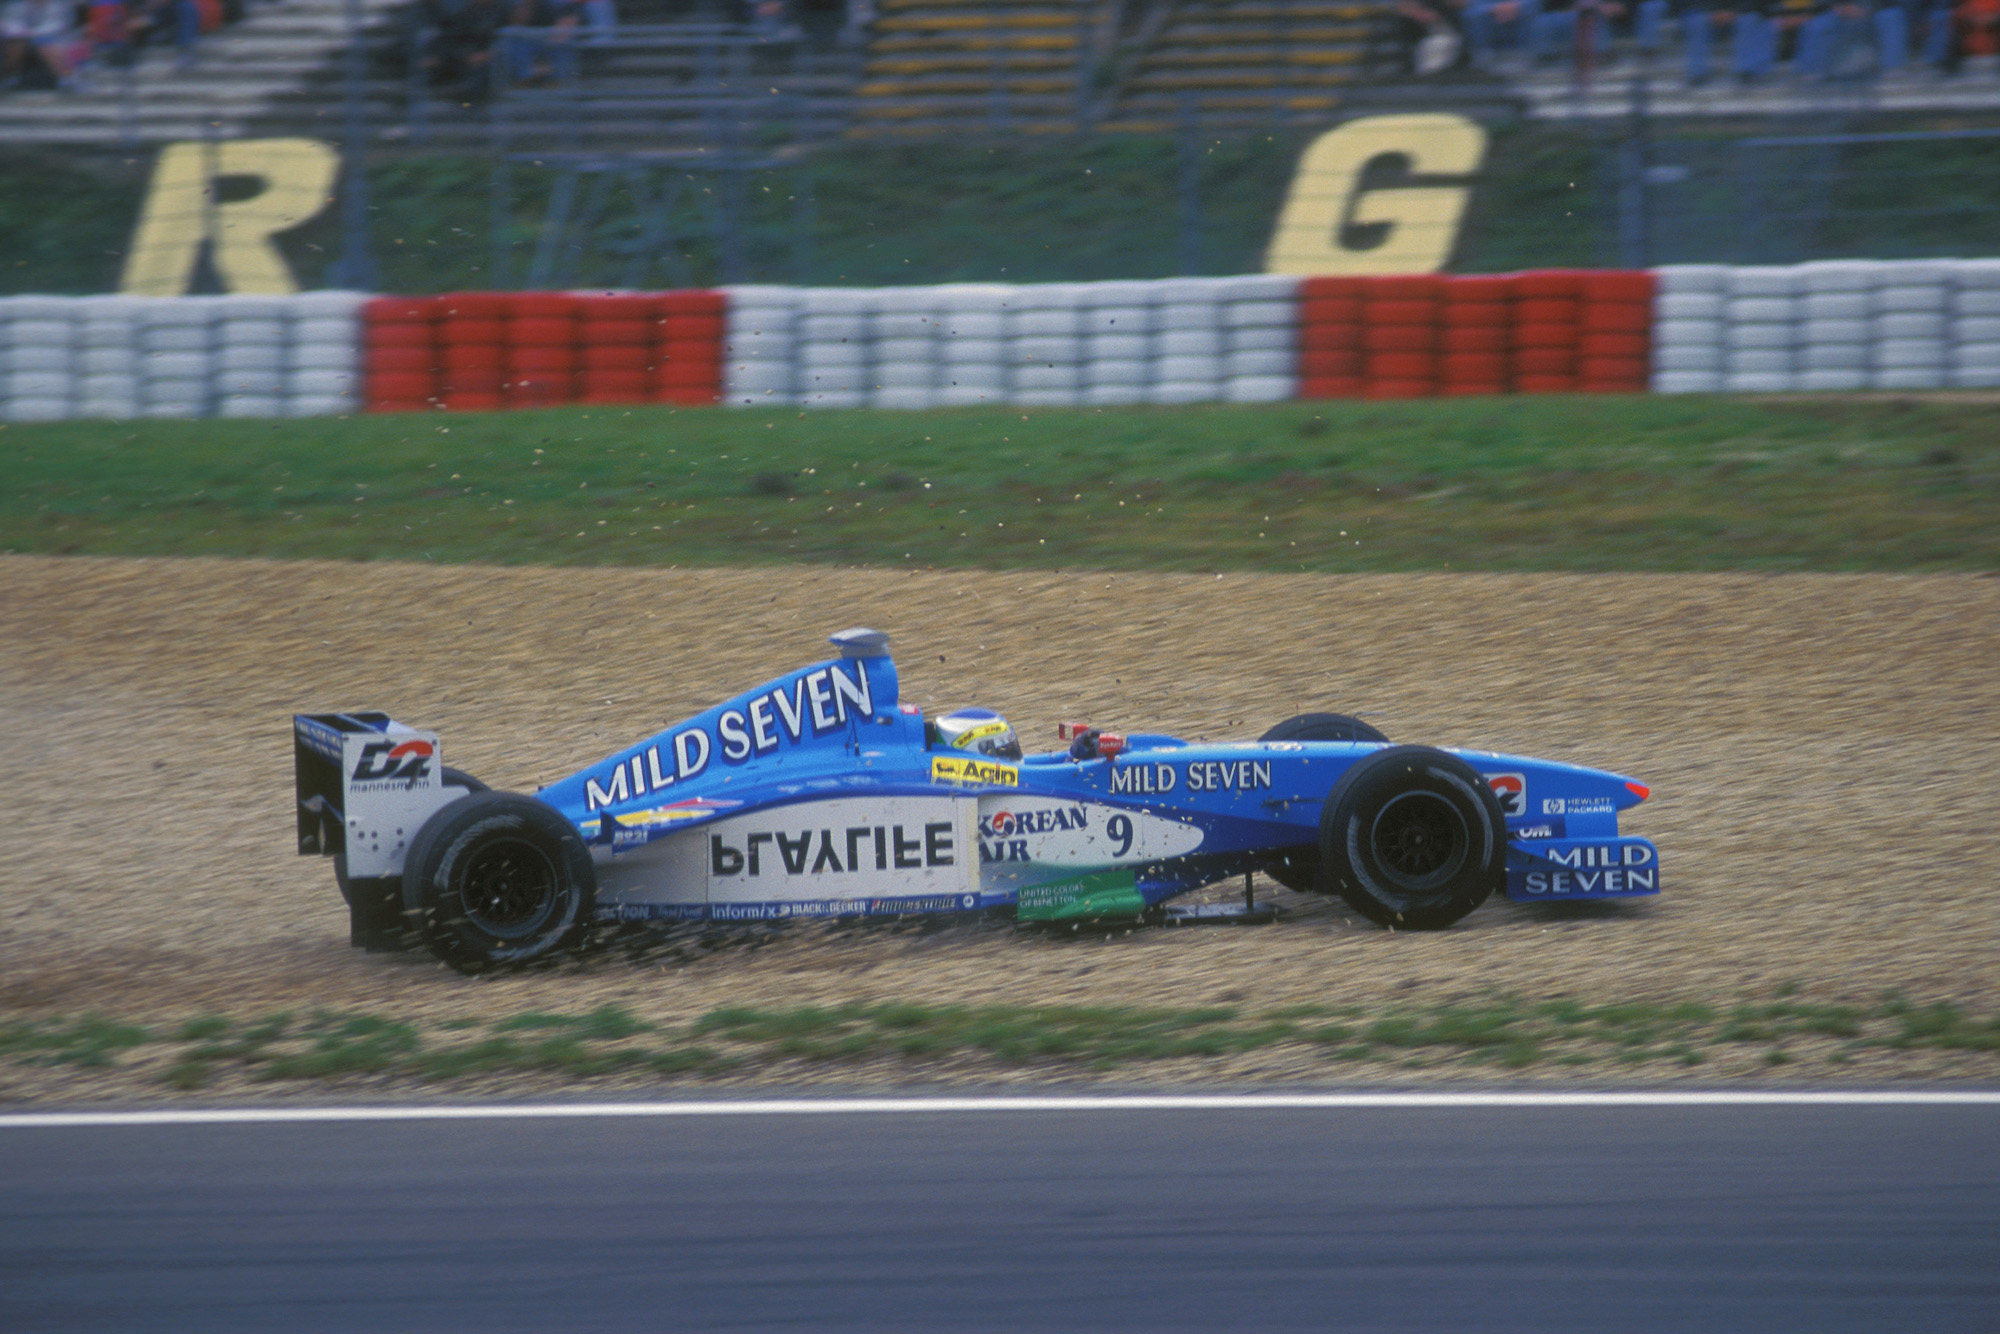 Giancarlo Fisichella running off the track at the 1999 European Grand Prix at the Nurburgring